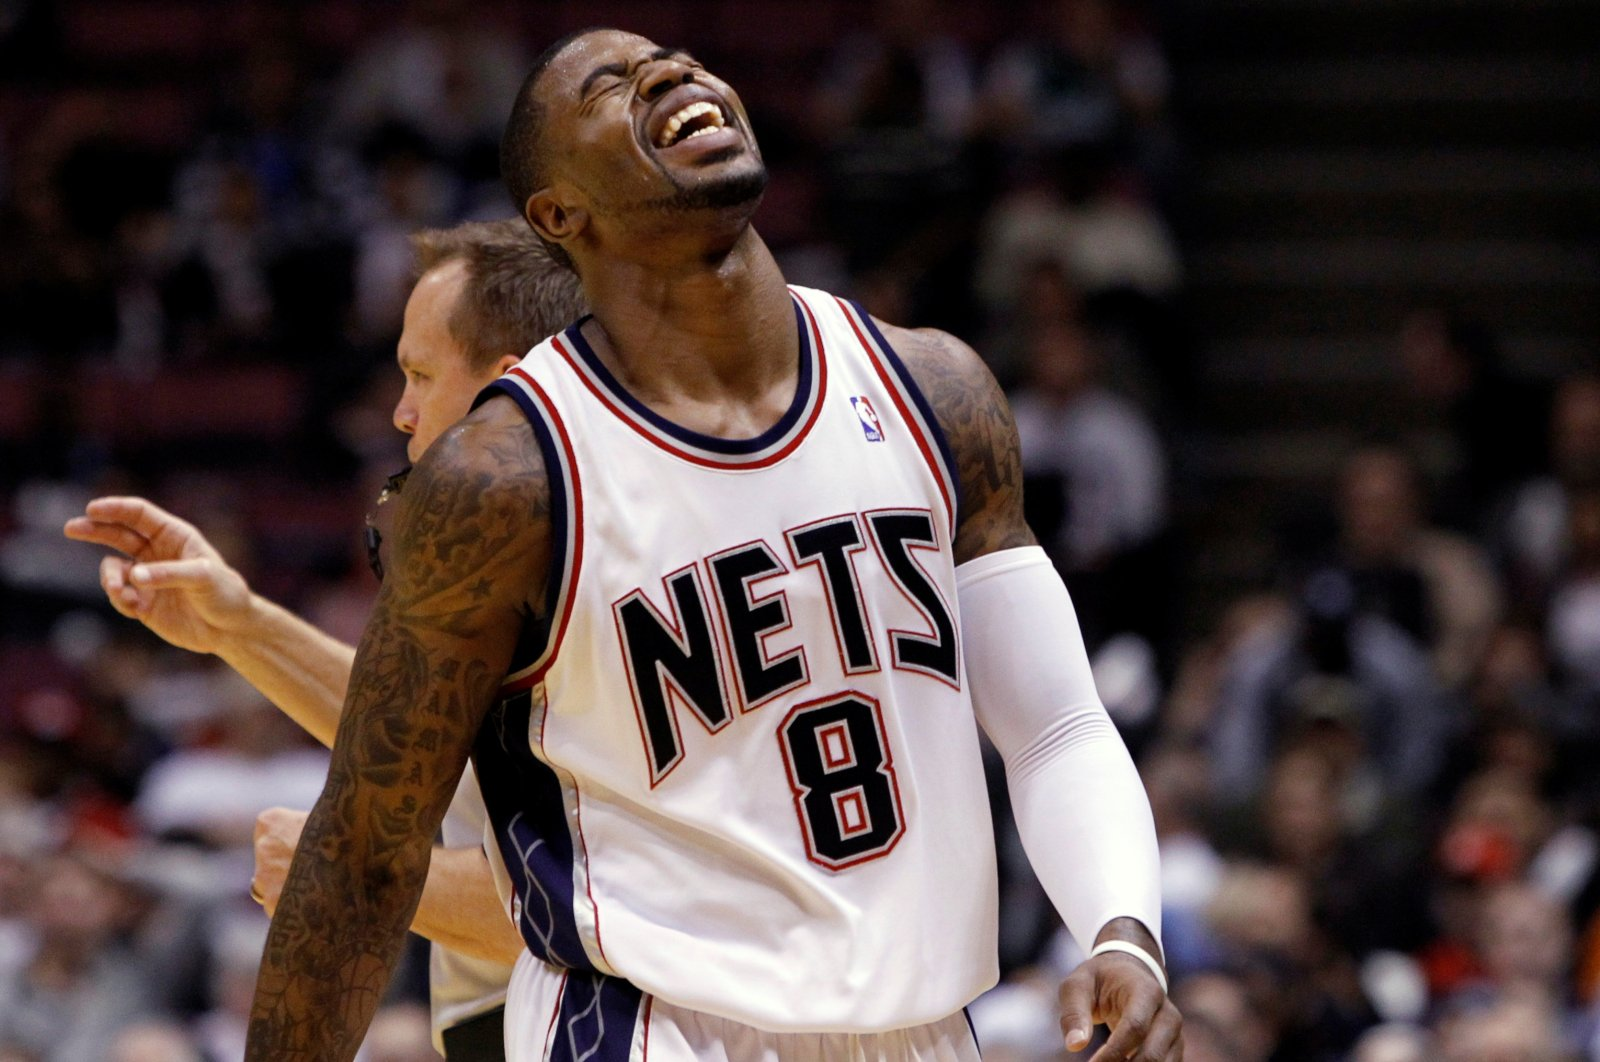 New Jersey Nets Terrence Williams reacts after missing a shot against the Dallas Mavericks in the first quarter of their NBA basketball game in East Rutherford, New Jersey, U.S., Dec. 2, 2009. (Reuters File Photo)